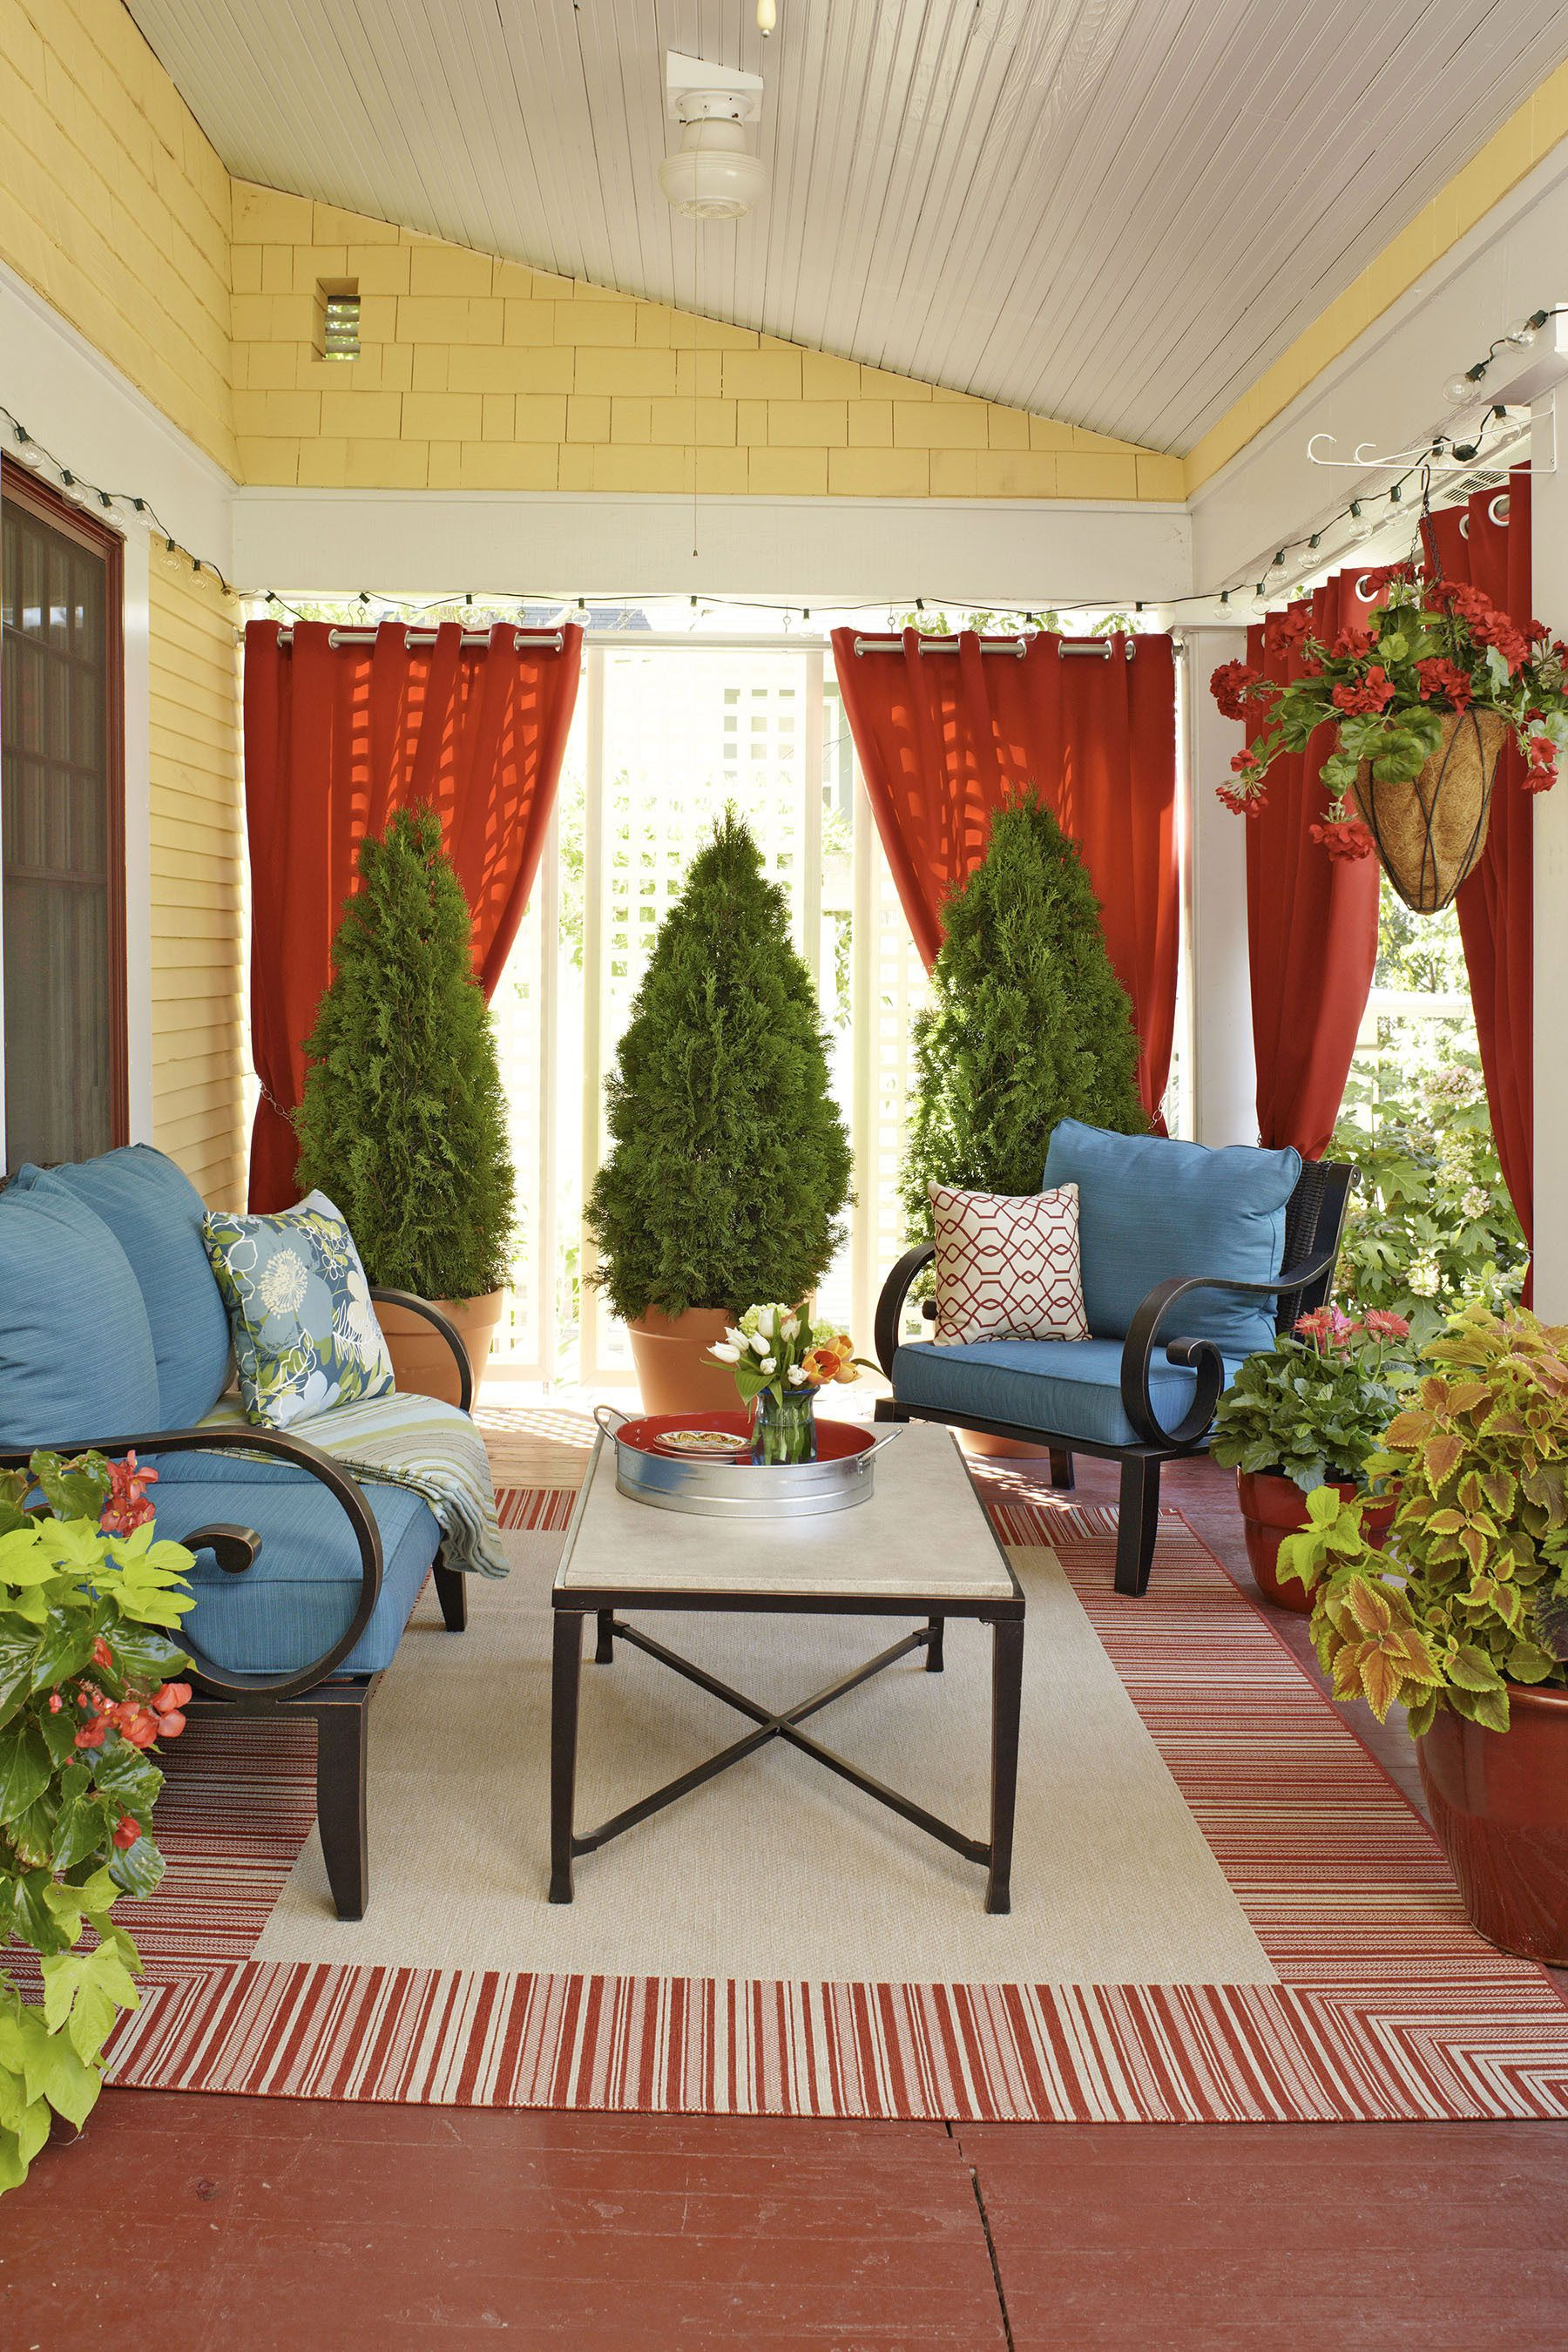 Bring life to your patio with greenery and outdoor lighting